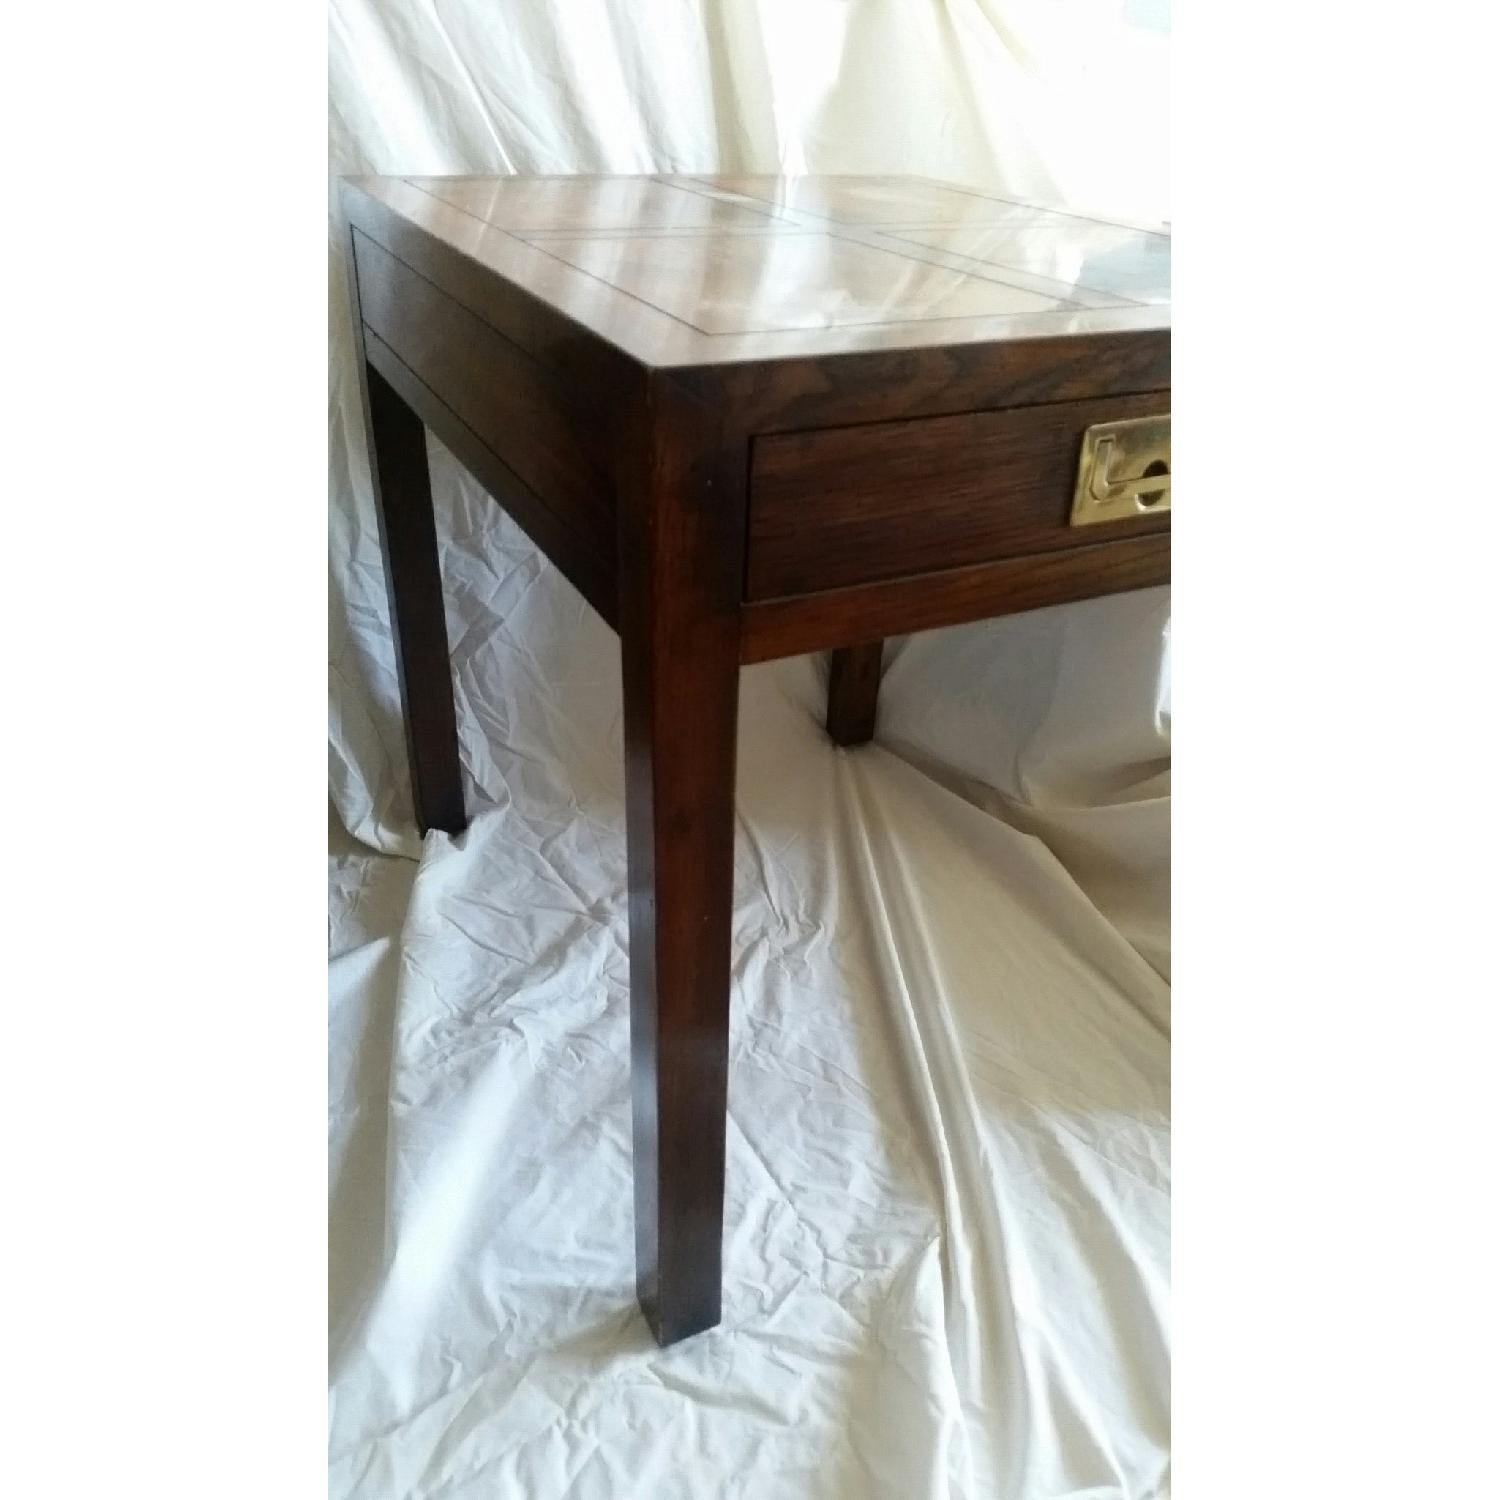 Antique Table w/ Drawer - image-5